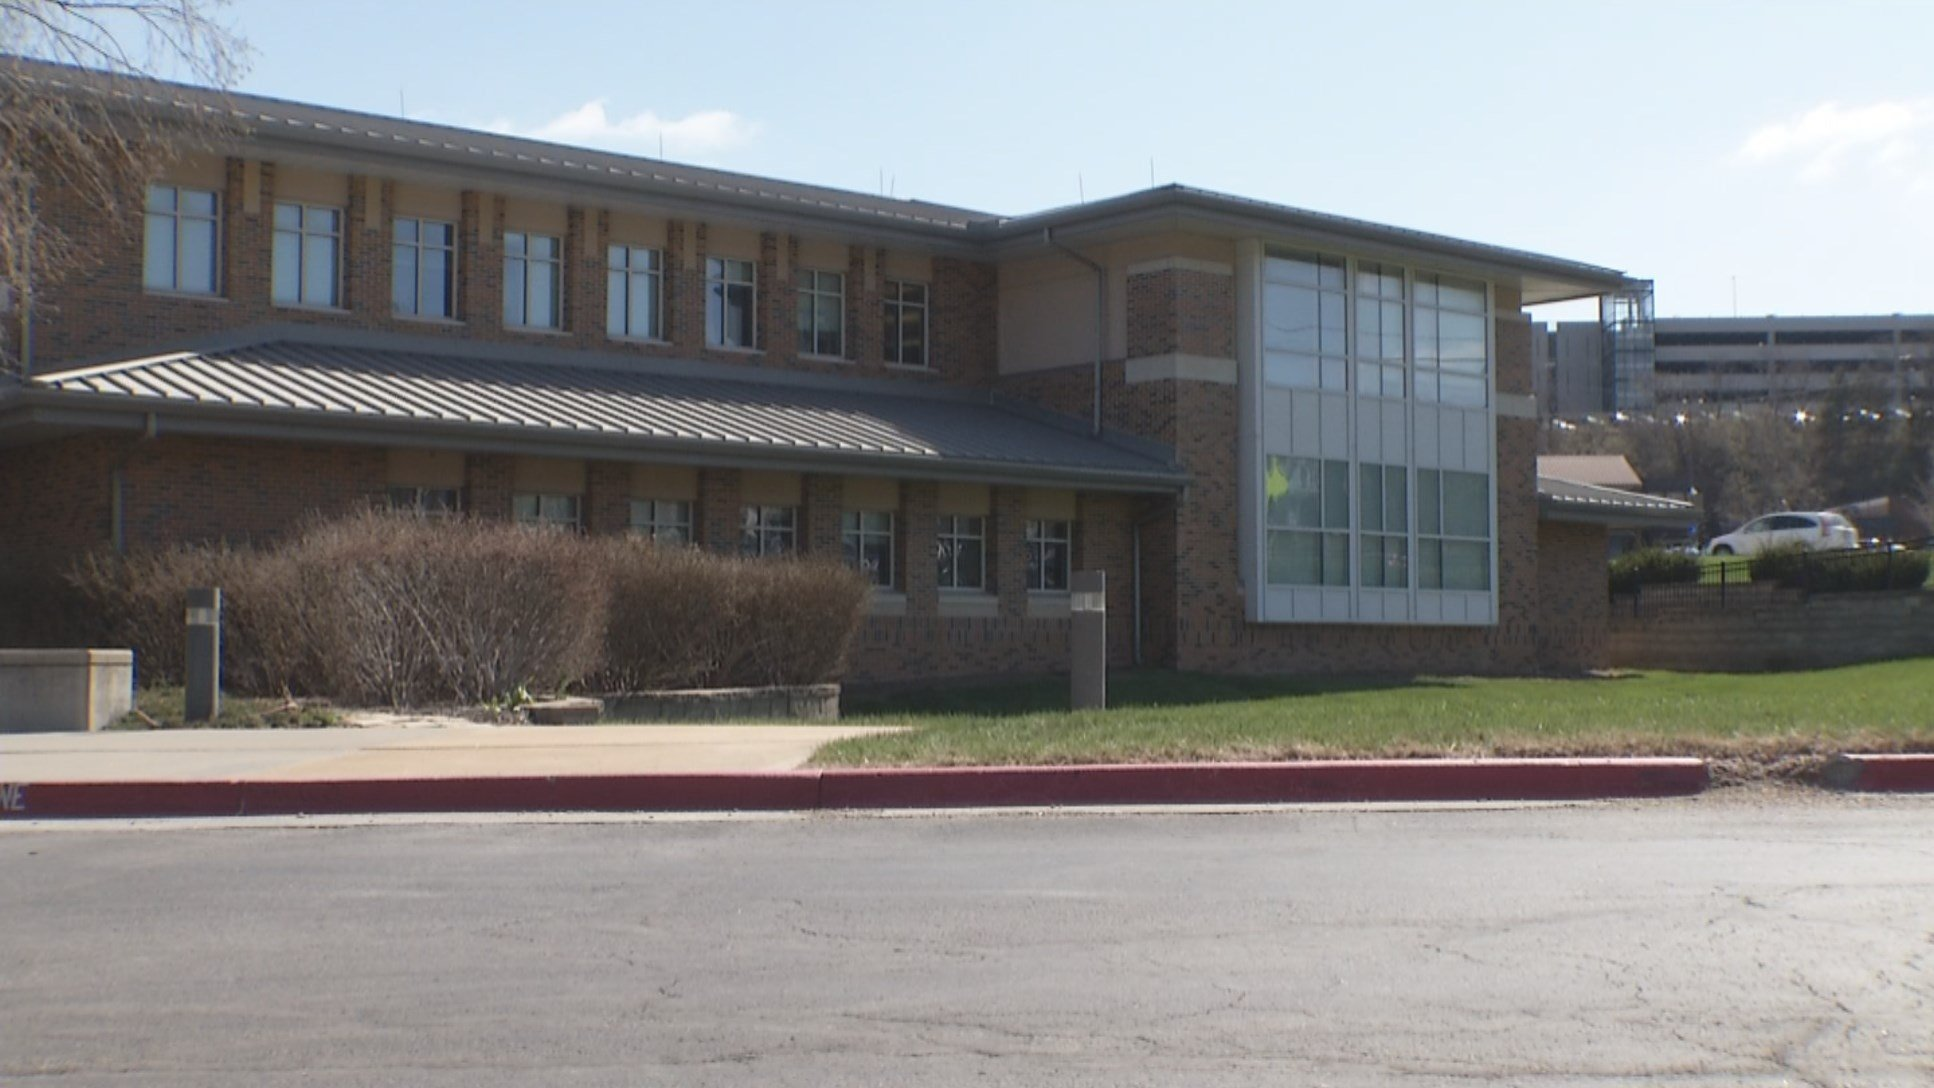 A University of Kansas Health Systems clinic for the elderly shut down after mold was discovered.